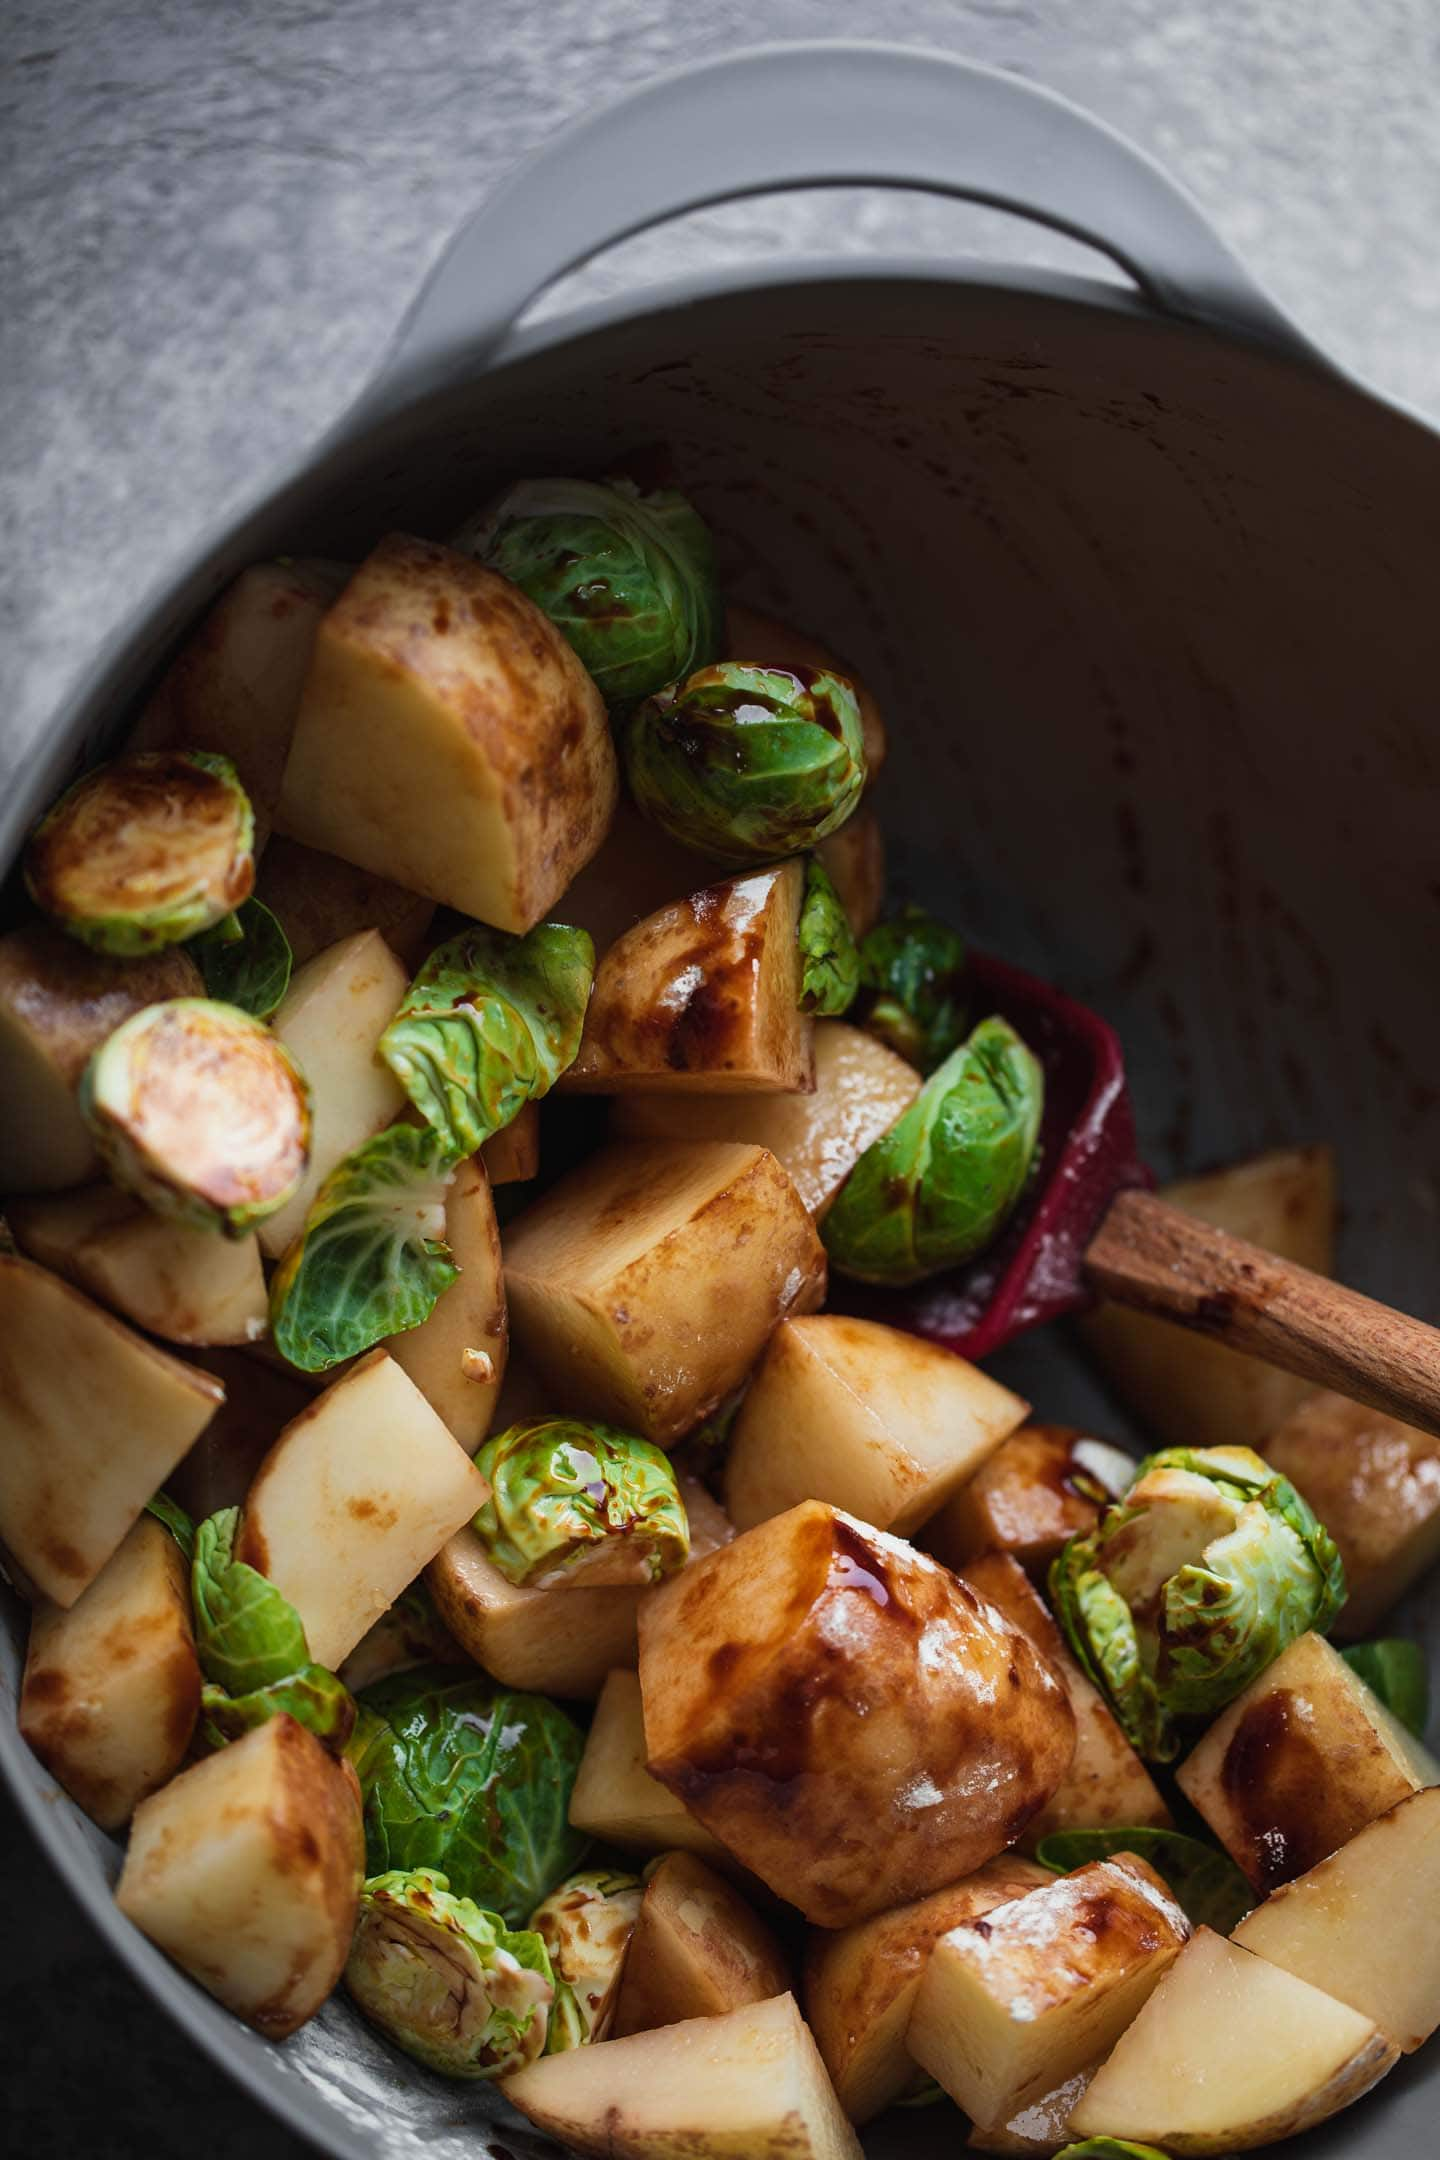 Mixing bowl with potatoes and Brussels sprouts